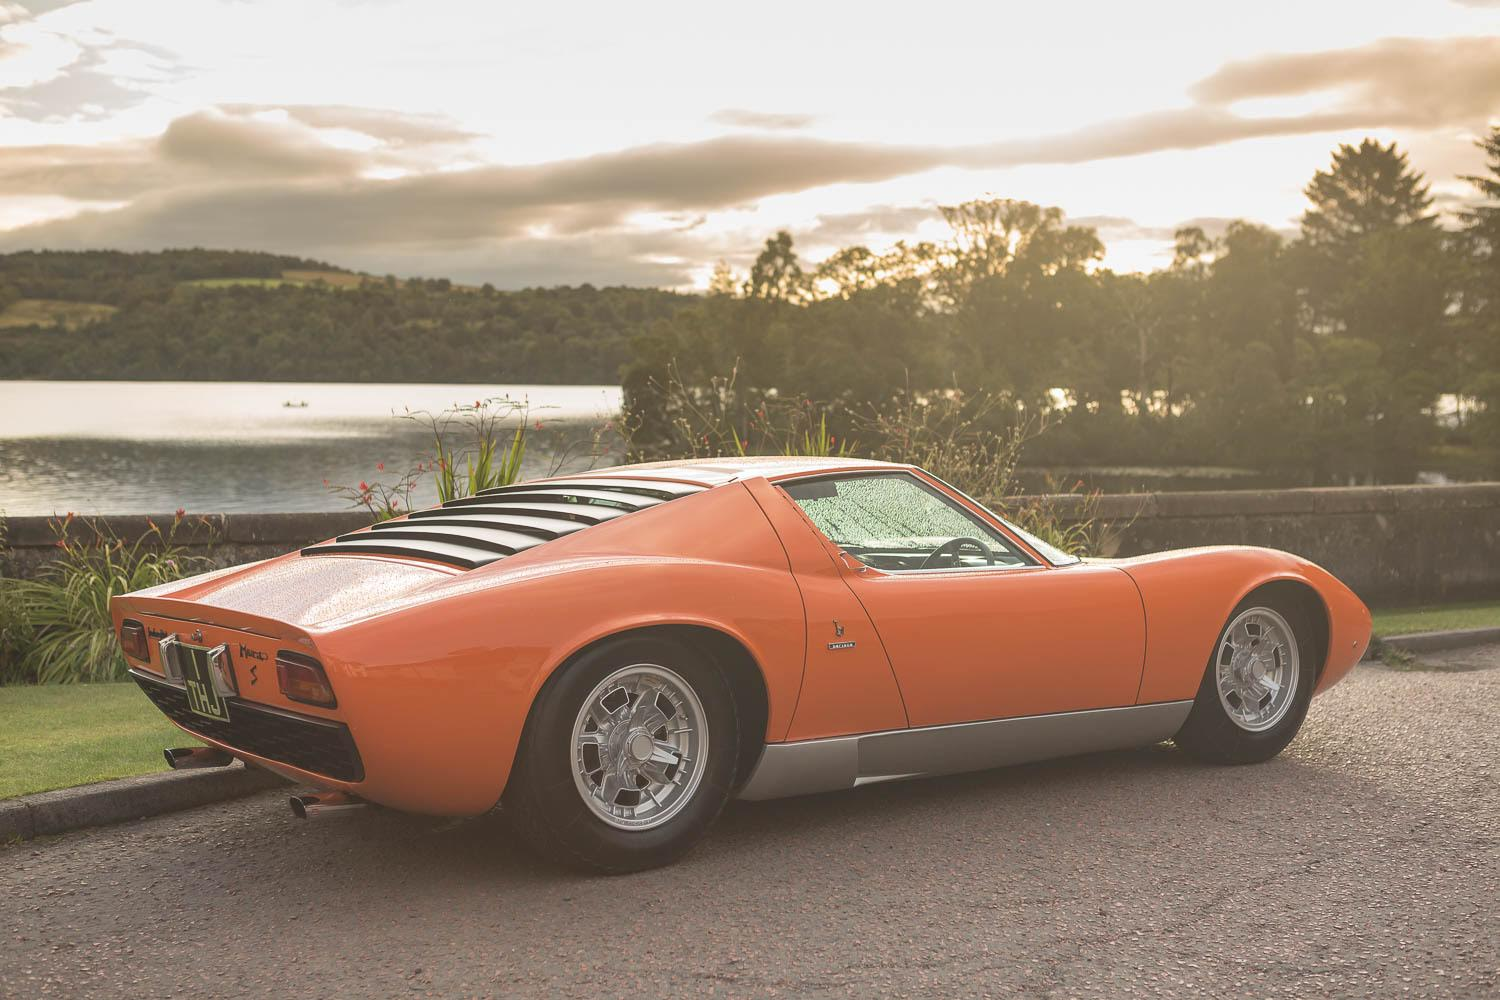 London Concours To Host Show Stopping Lamborghini Miura Display